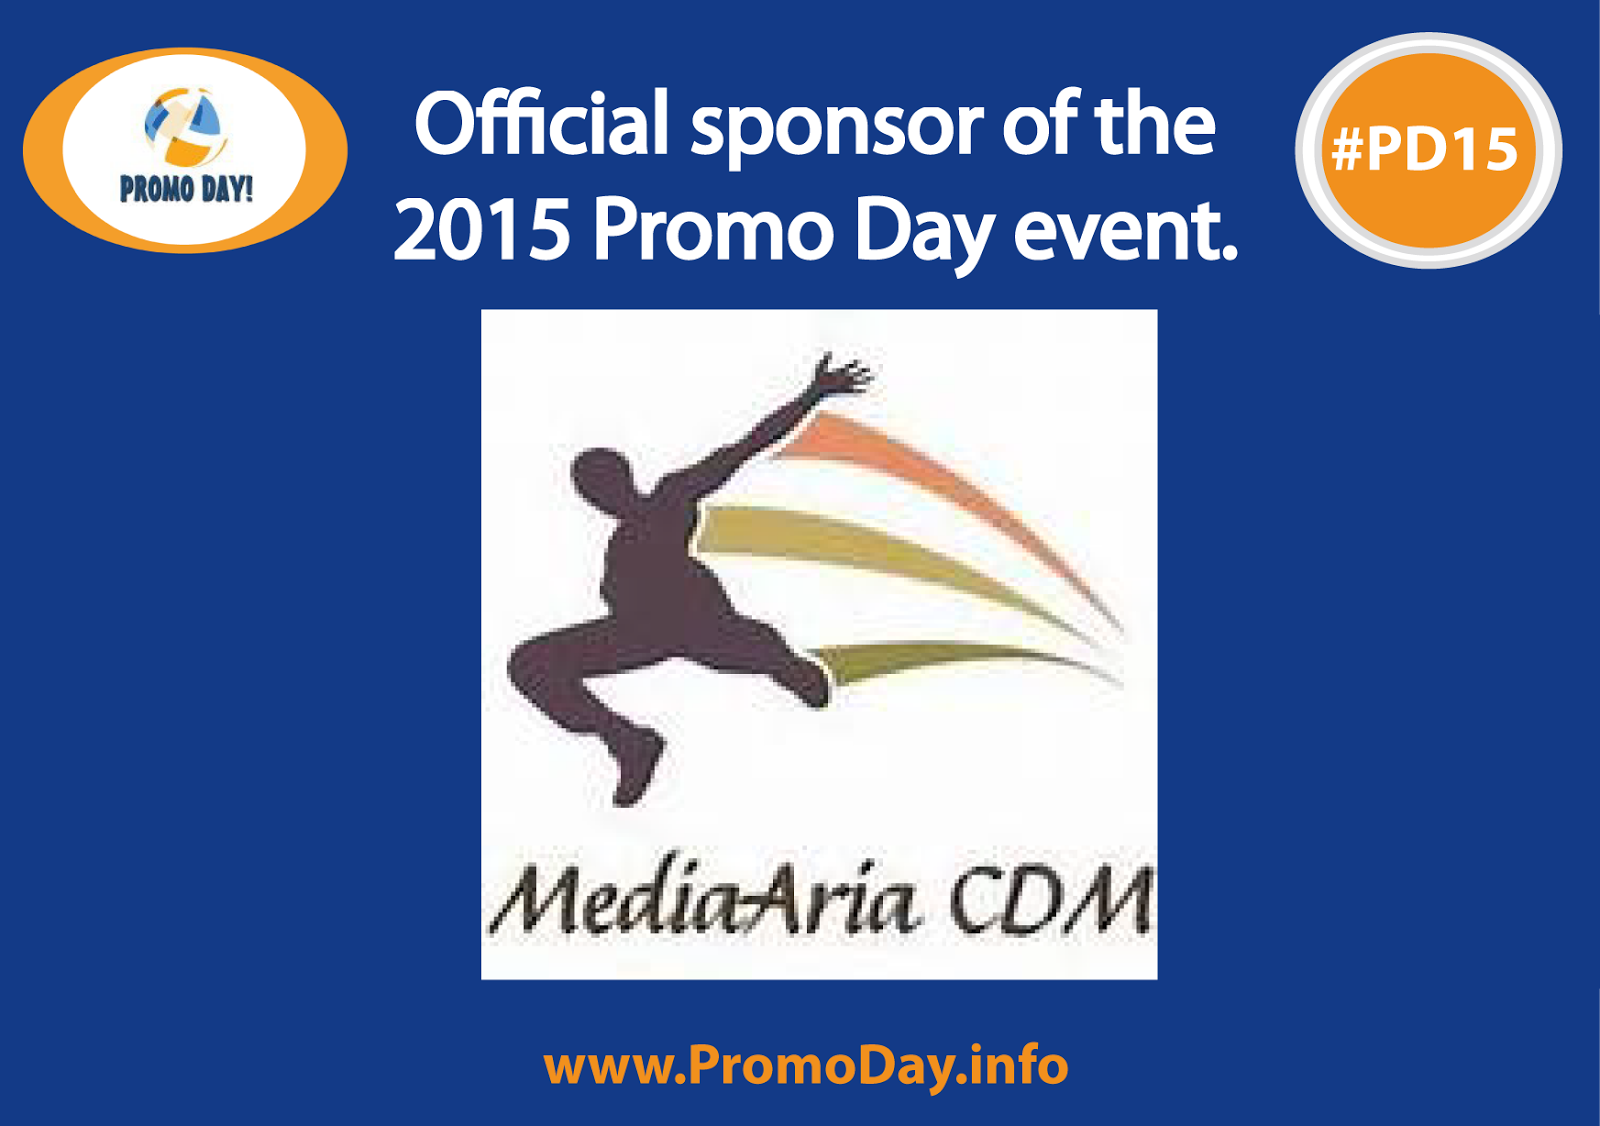 Meet the #PD15 Sponsors, Mediaaria CDM, www.PromoDay.info